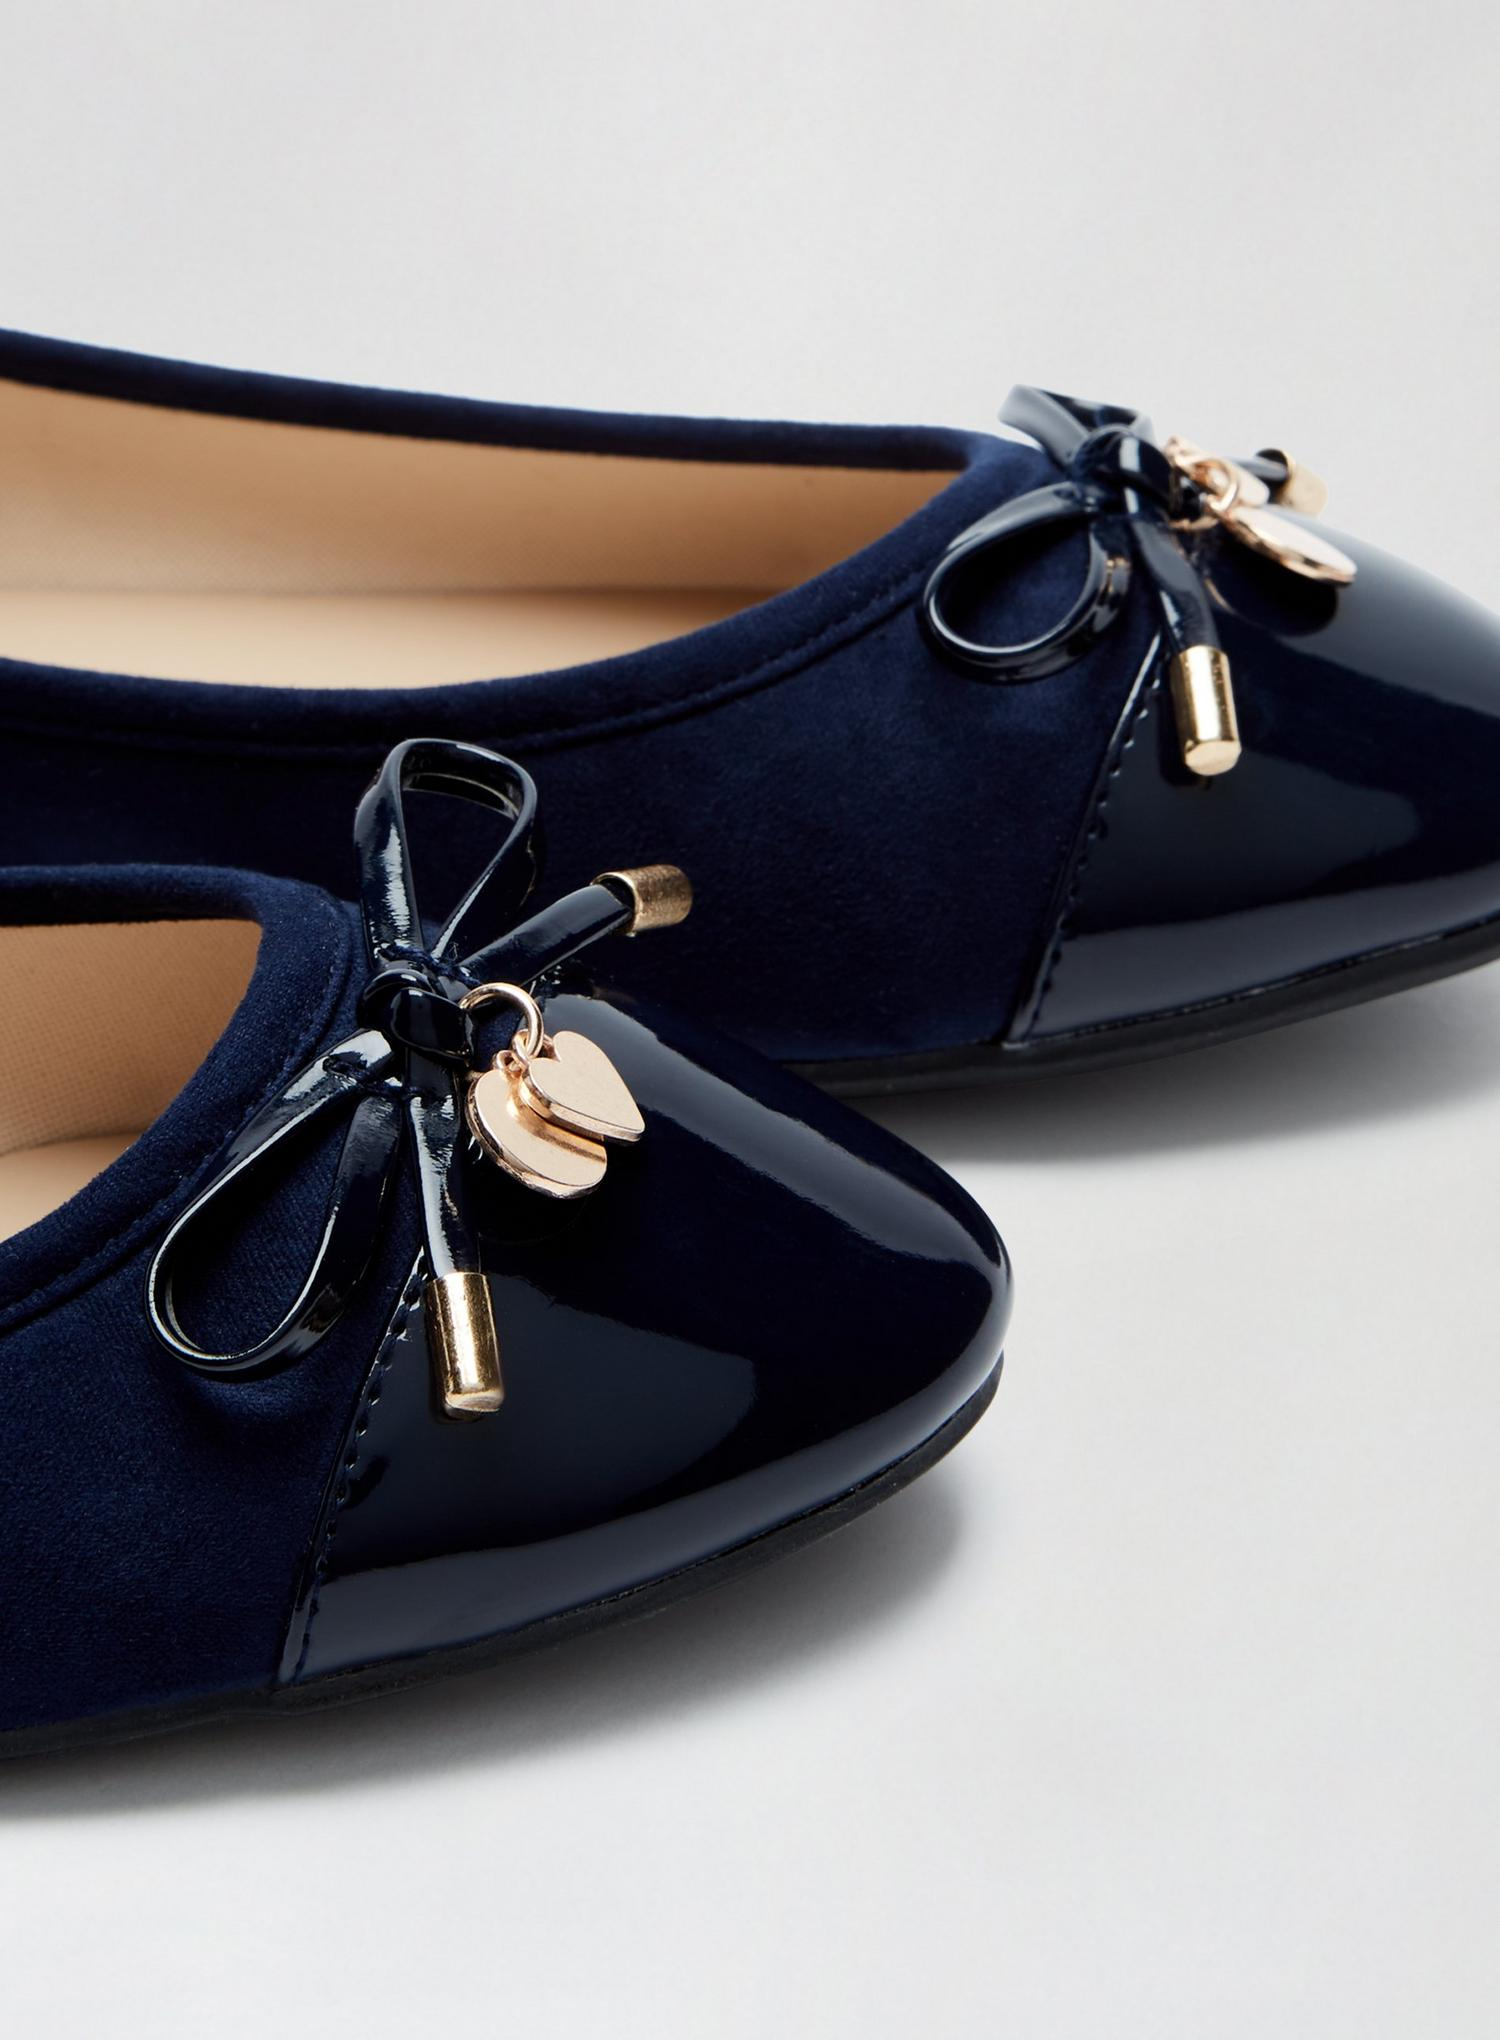 148 Wide Fit Navy Pacific Ballerina Pumps image number 3